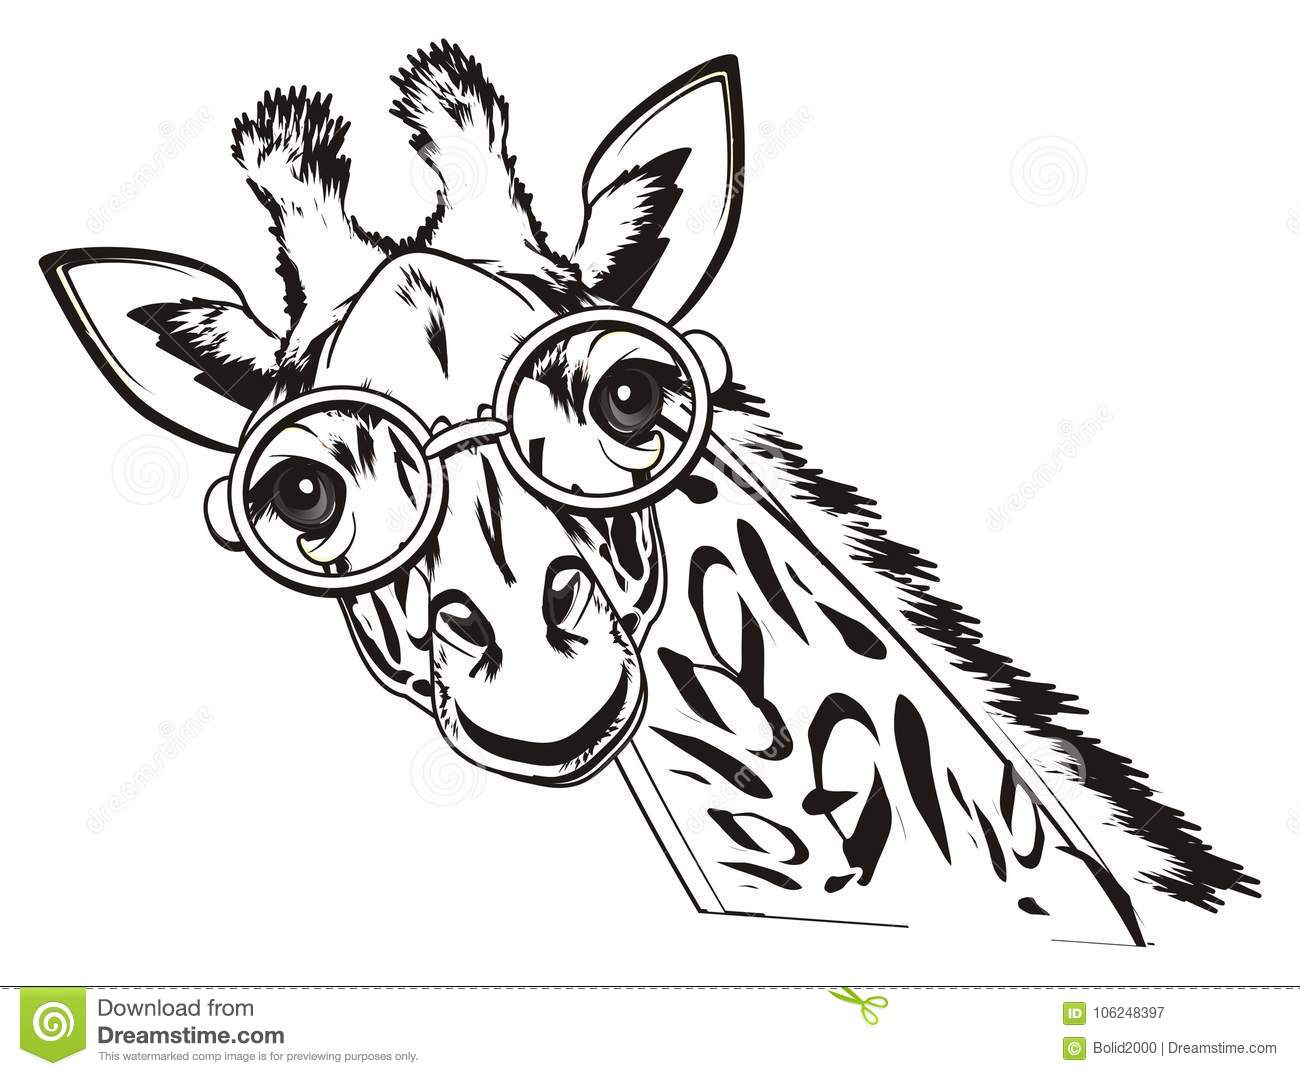 Not Colored Giraffe In Glasses Stock Illustration